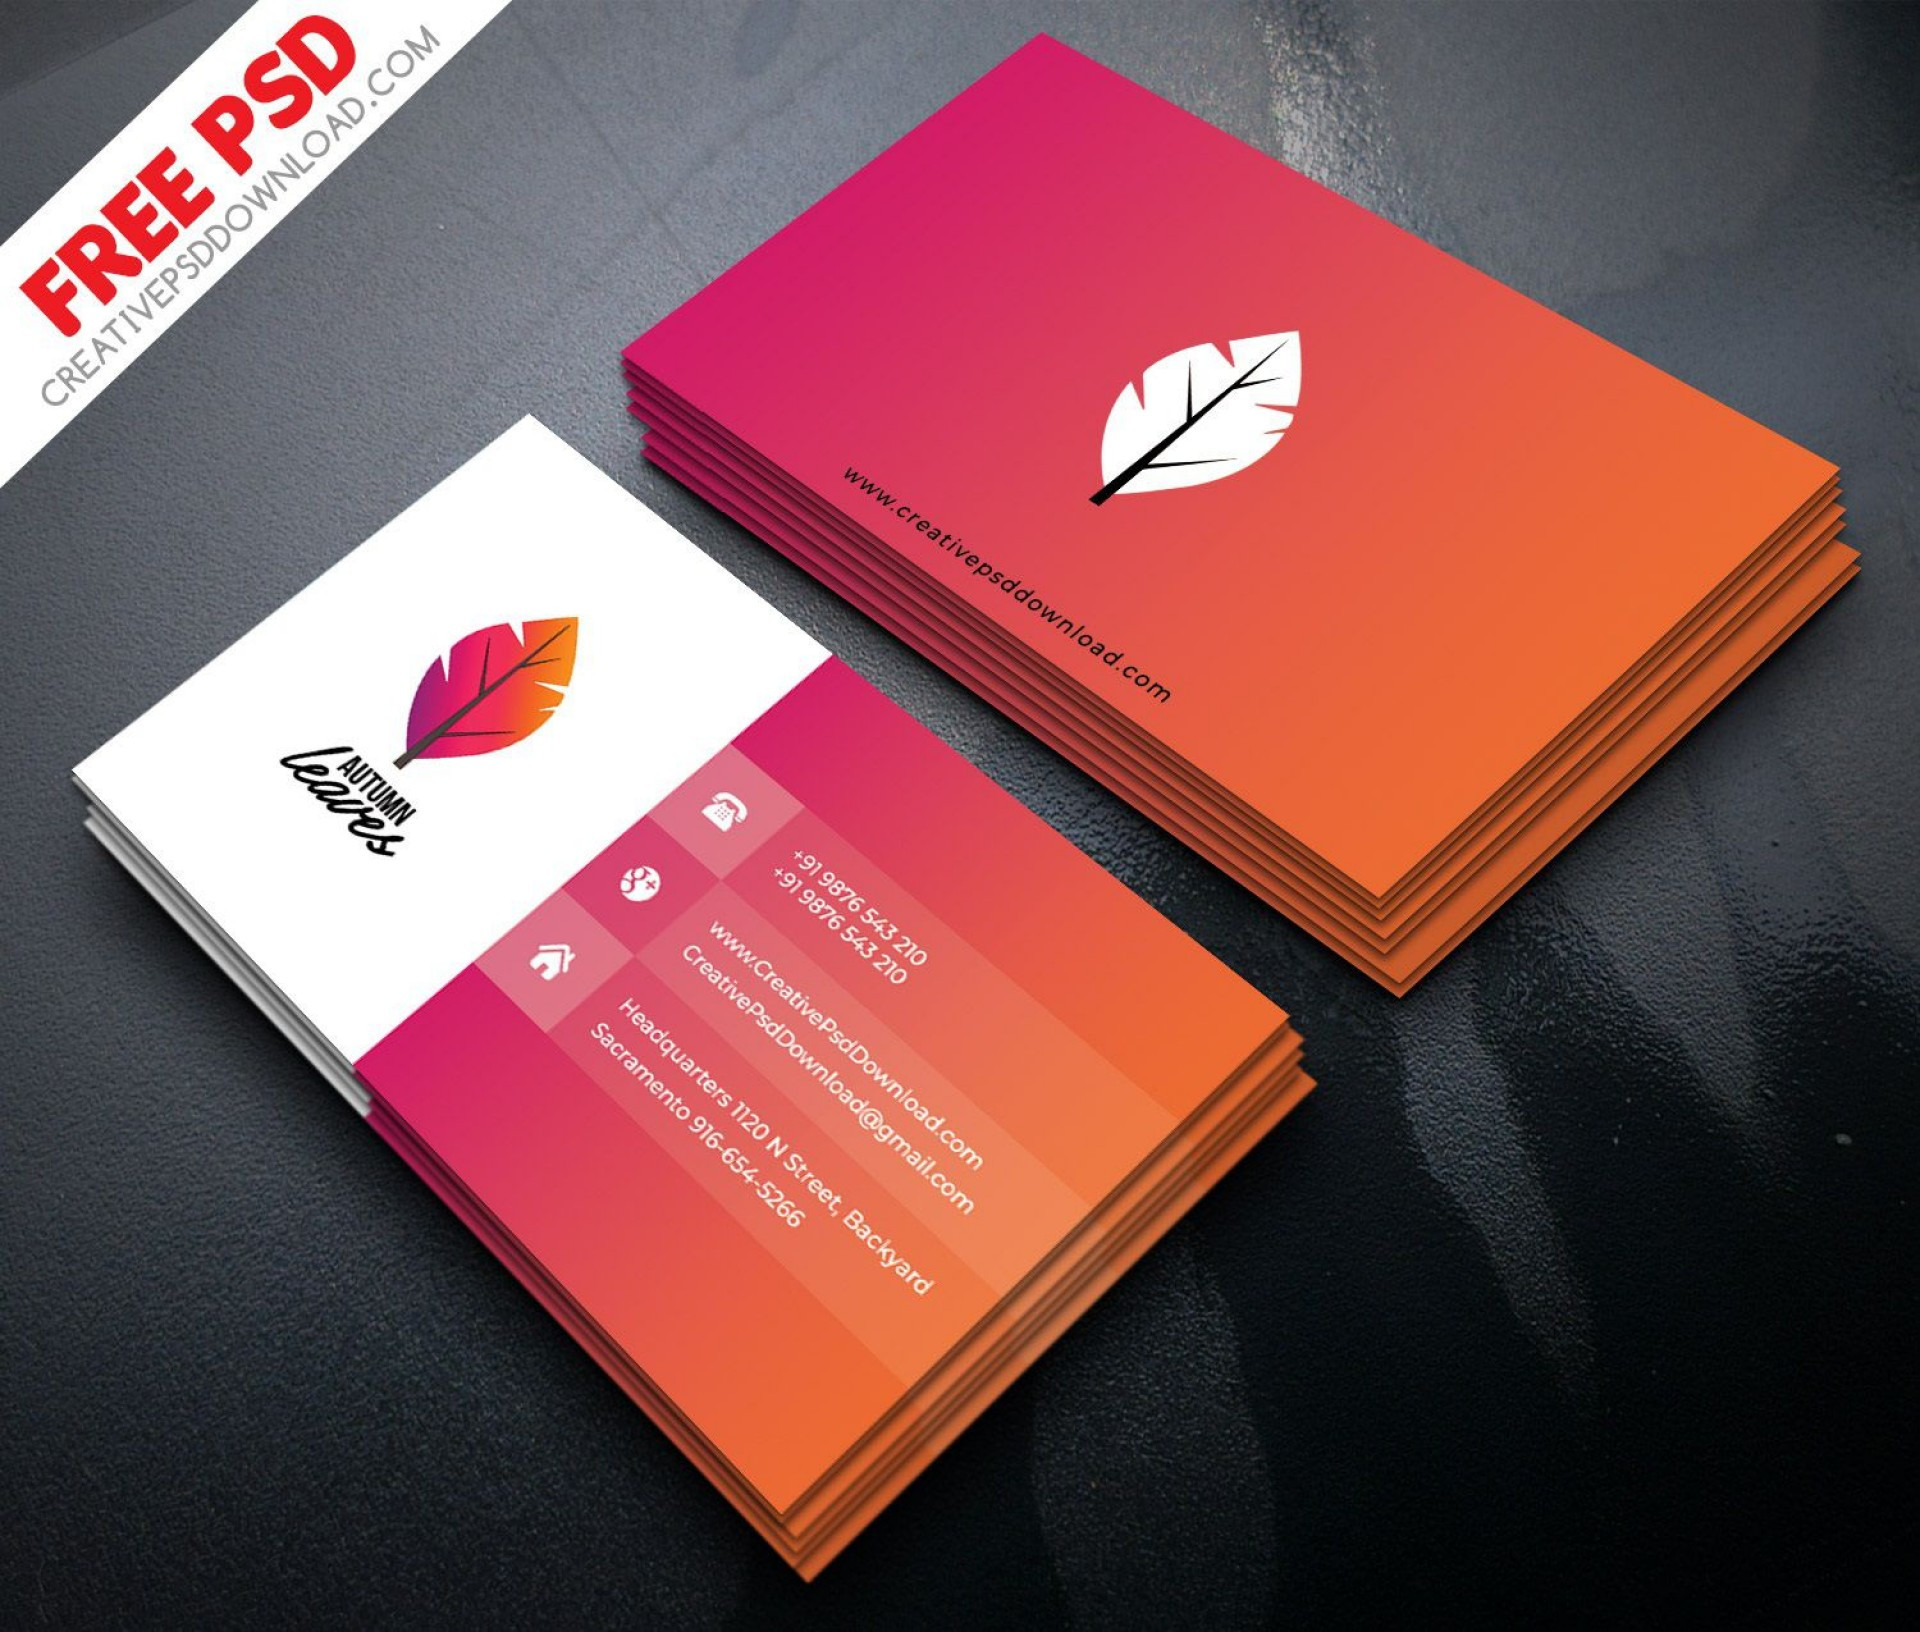 009 Stupendou Simple Busines Card Template Free Download Picture  Visiting Design Psd File Minimalist1920